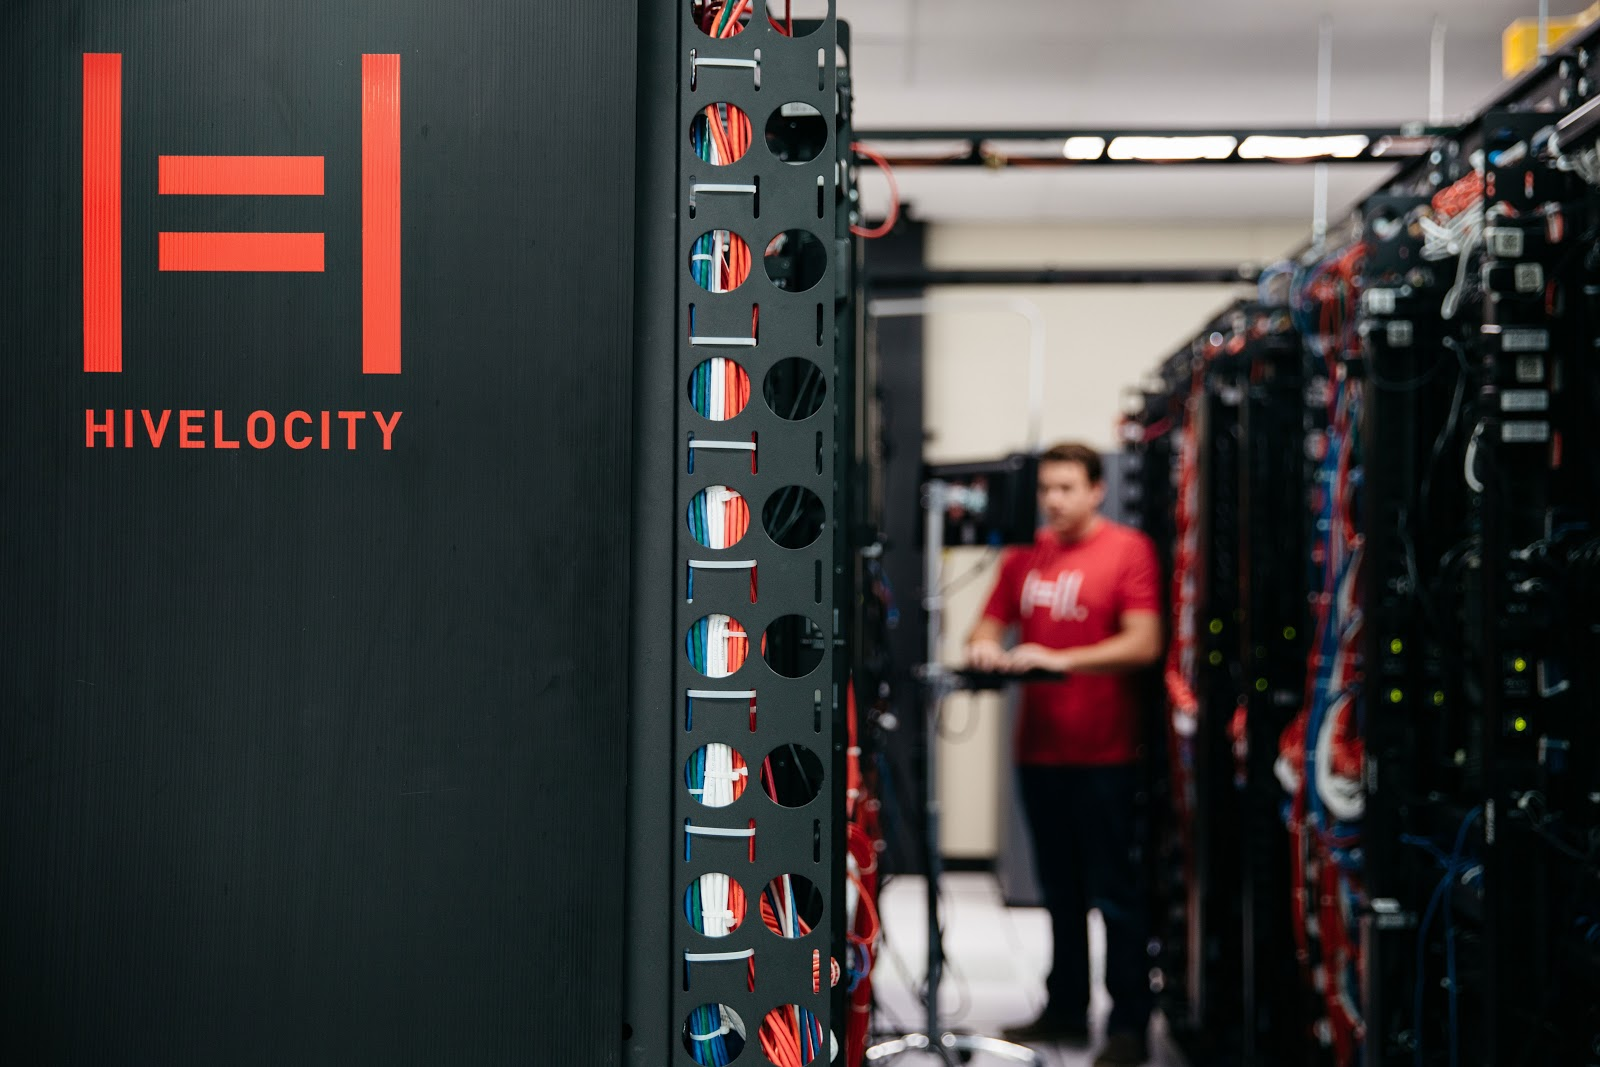 Dedicated Servers at Hivelocity's Tampa Data Center. Notice one of our techs is always in there working on a server.